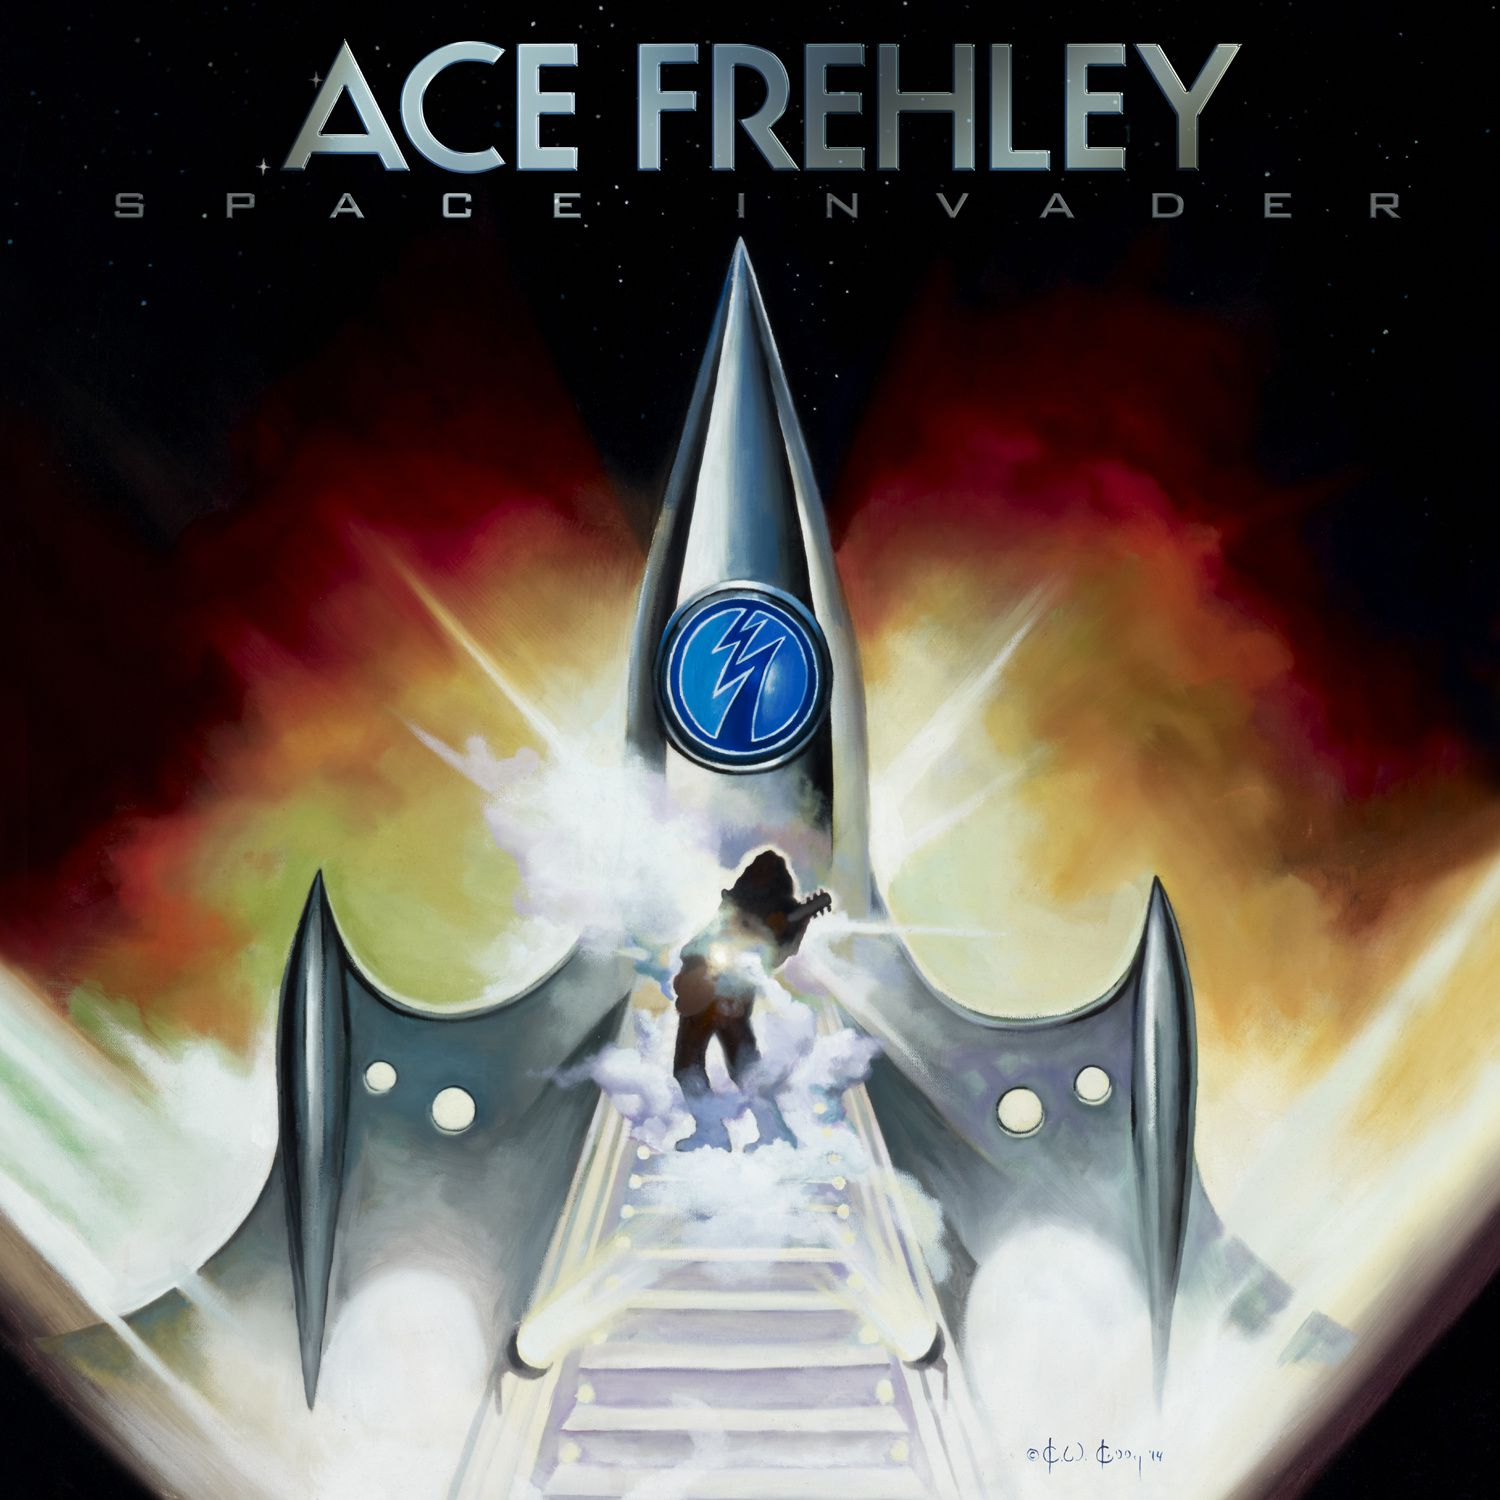 """CD review ACE FREHLEY """"Space invaders"""""""